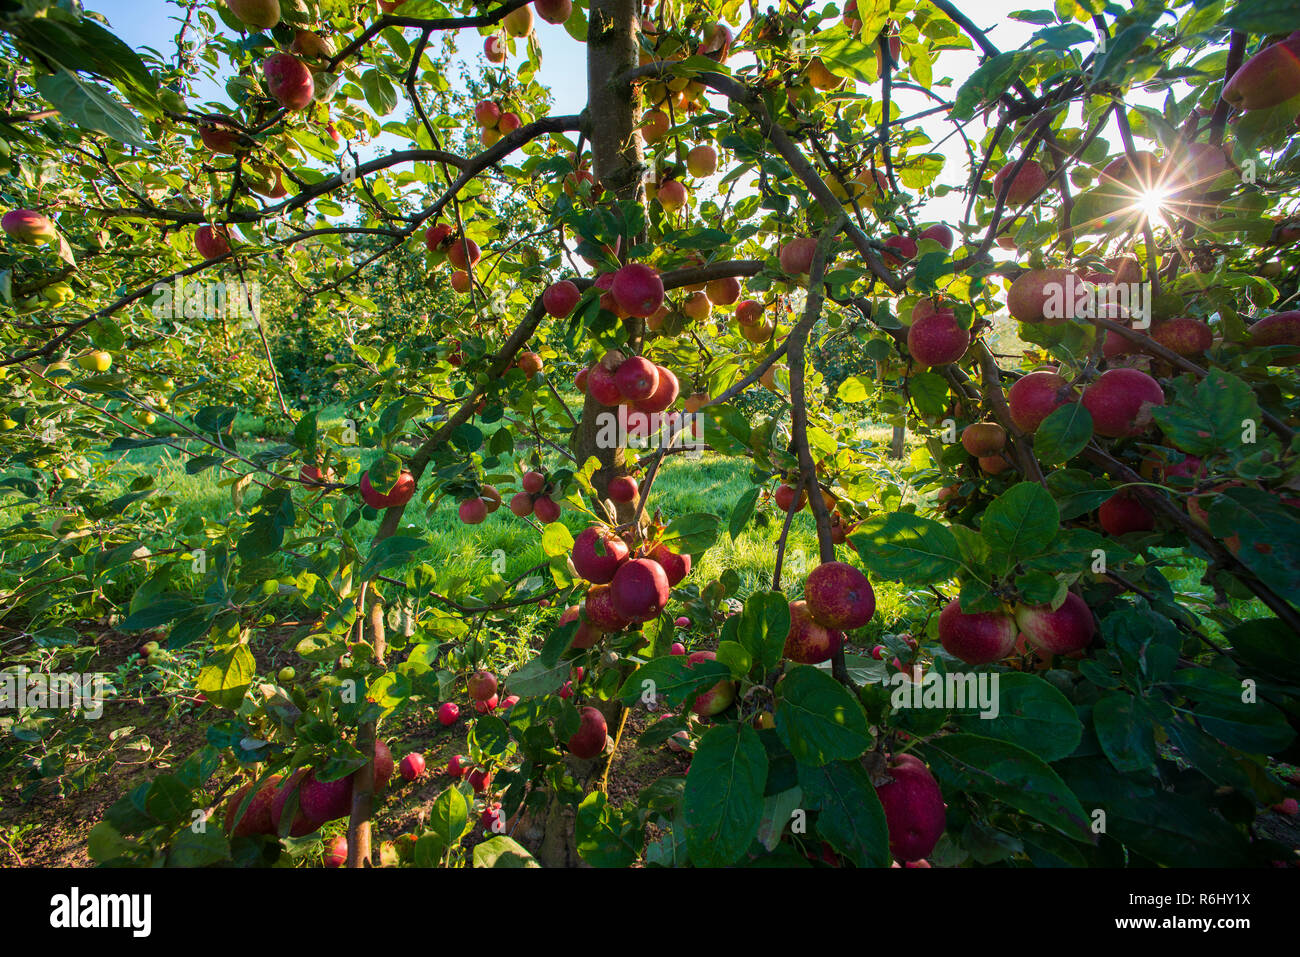 Coder Apples In Somerset, uk - Stock Image